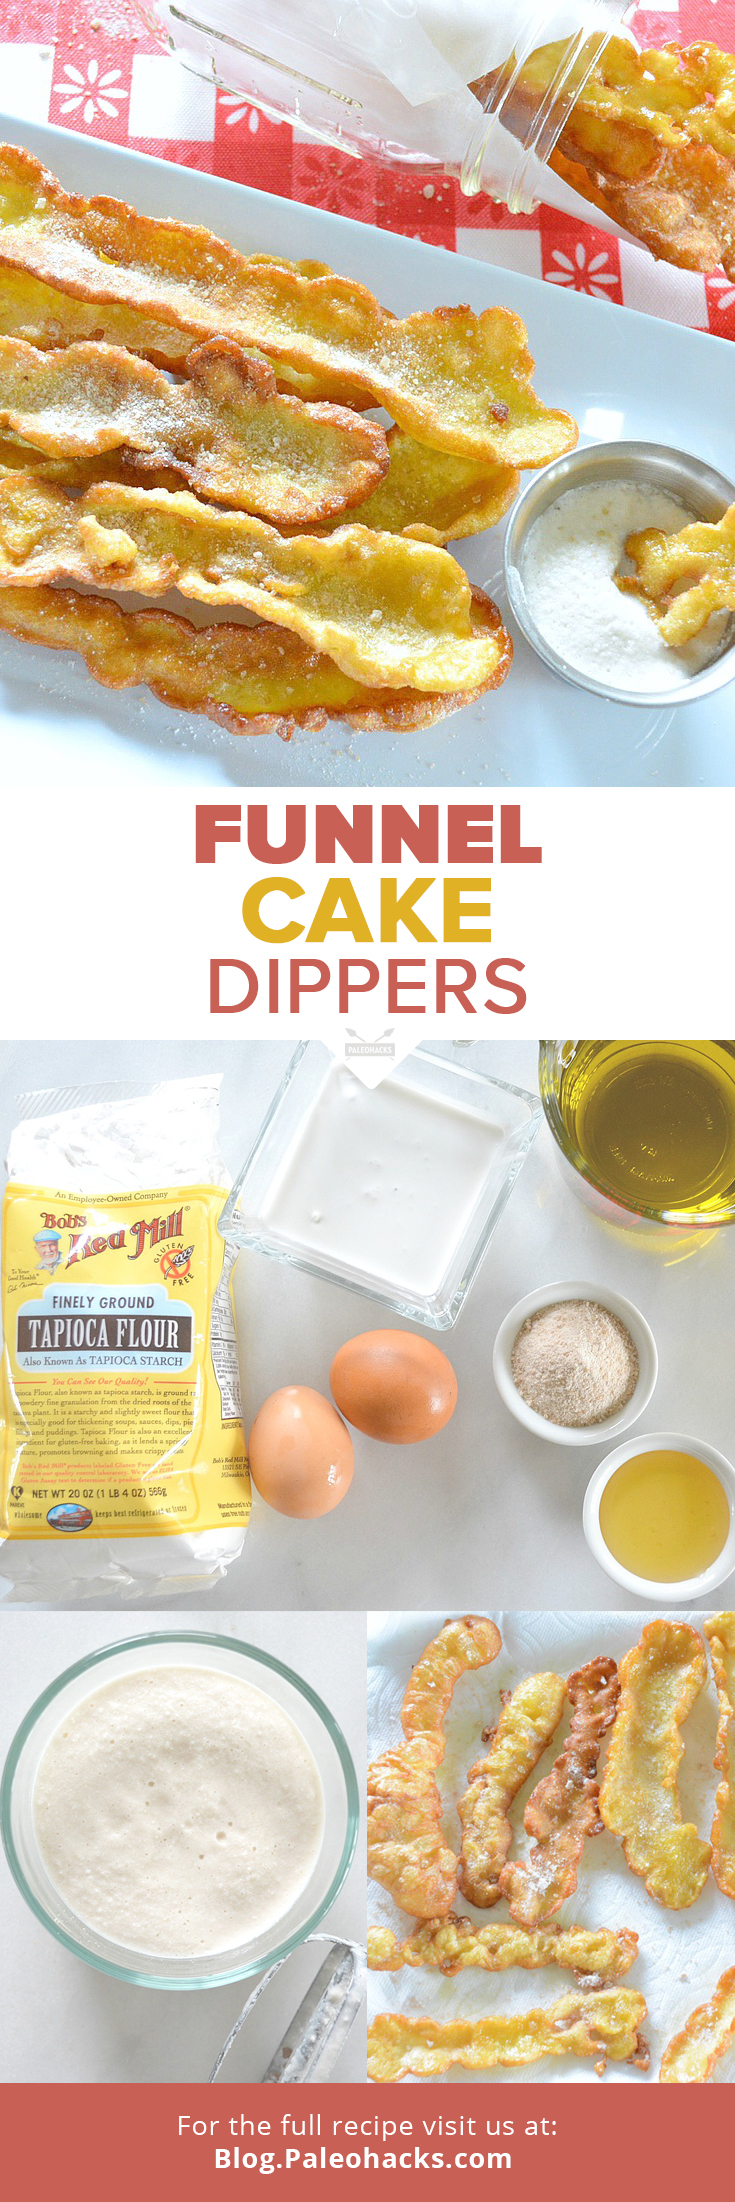 Funnel Cake Dippers Recipe Paleo Diet Recipes Food